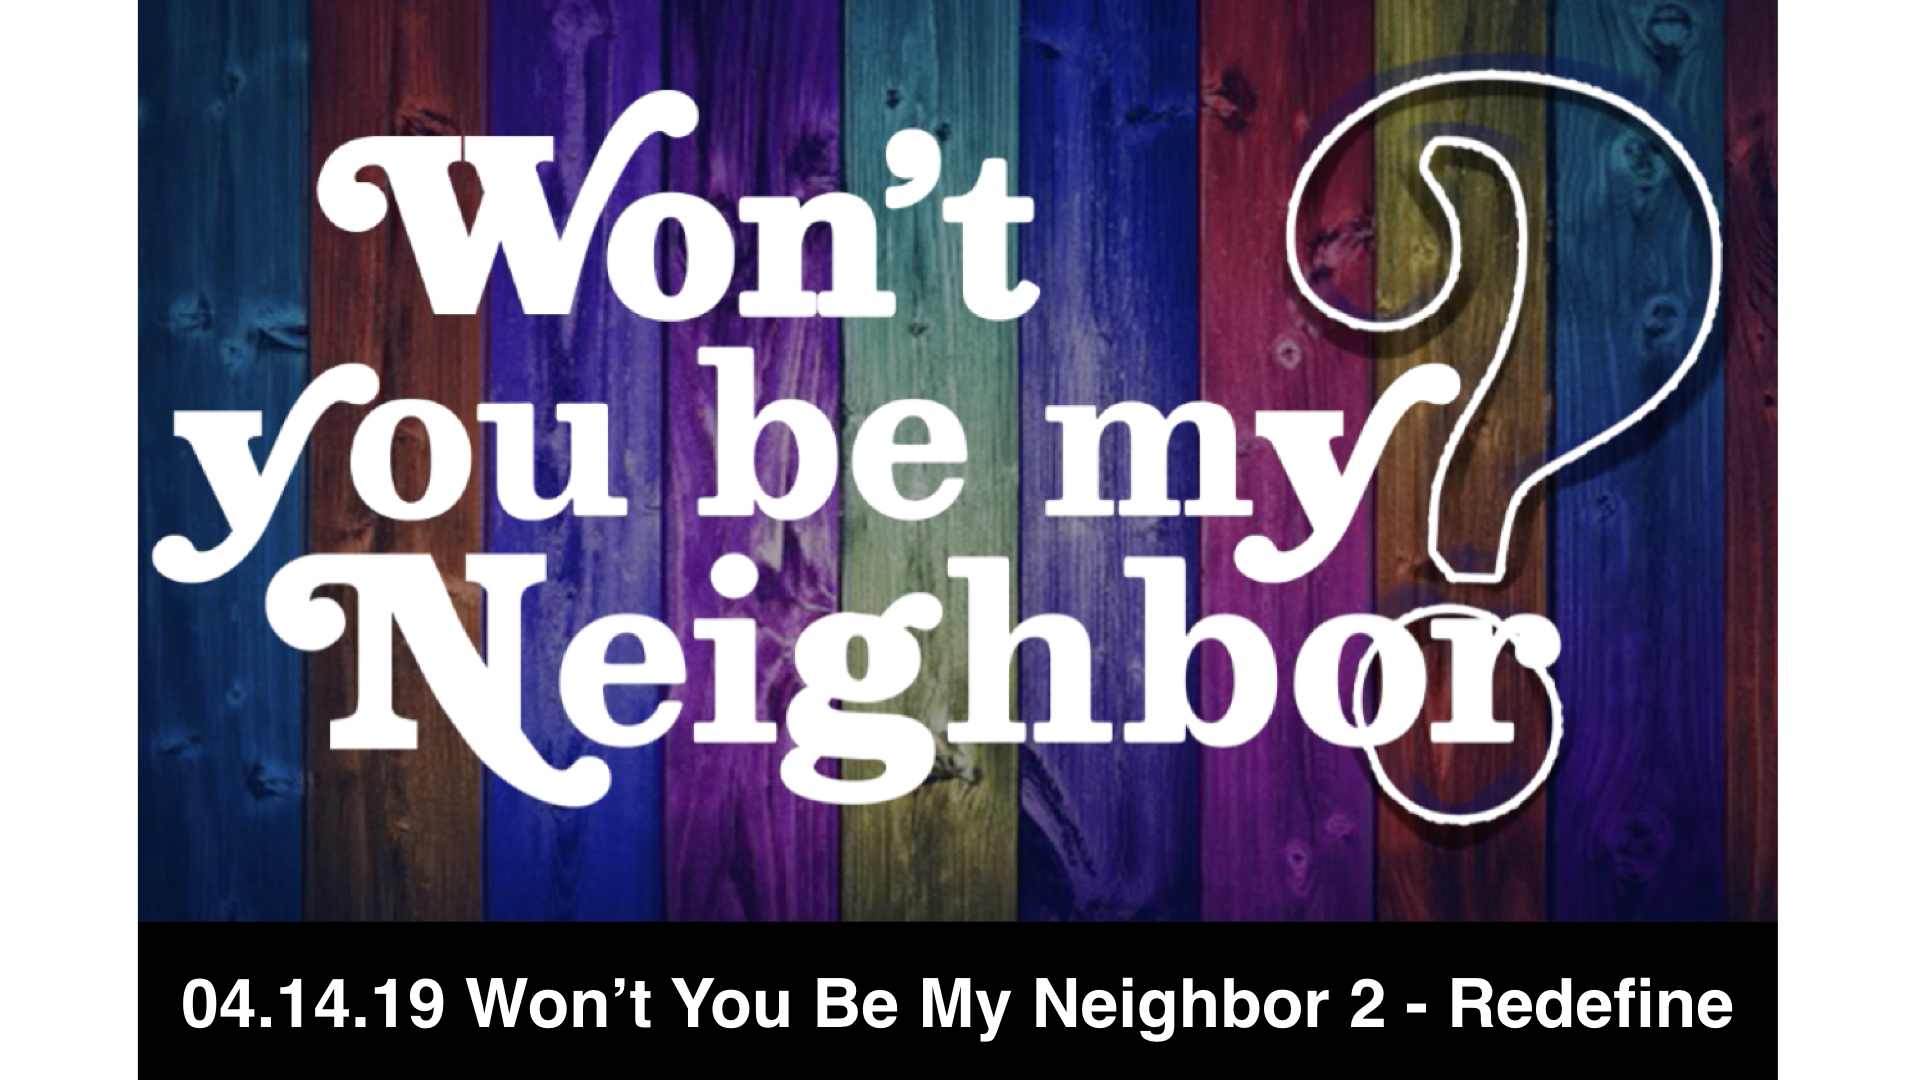 04-14-19 Won't You Be My Neighbor 2 - Redefine